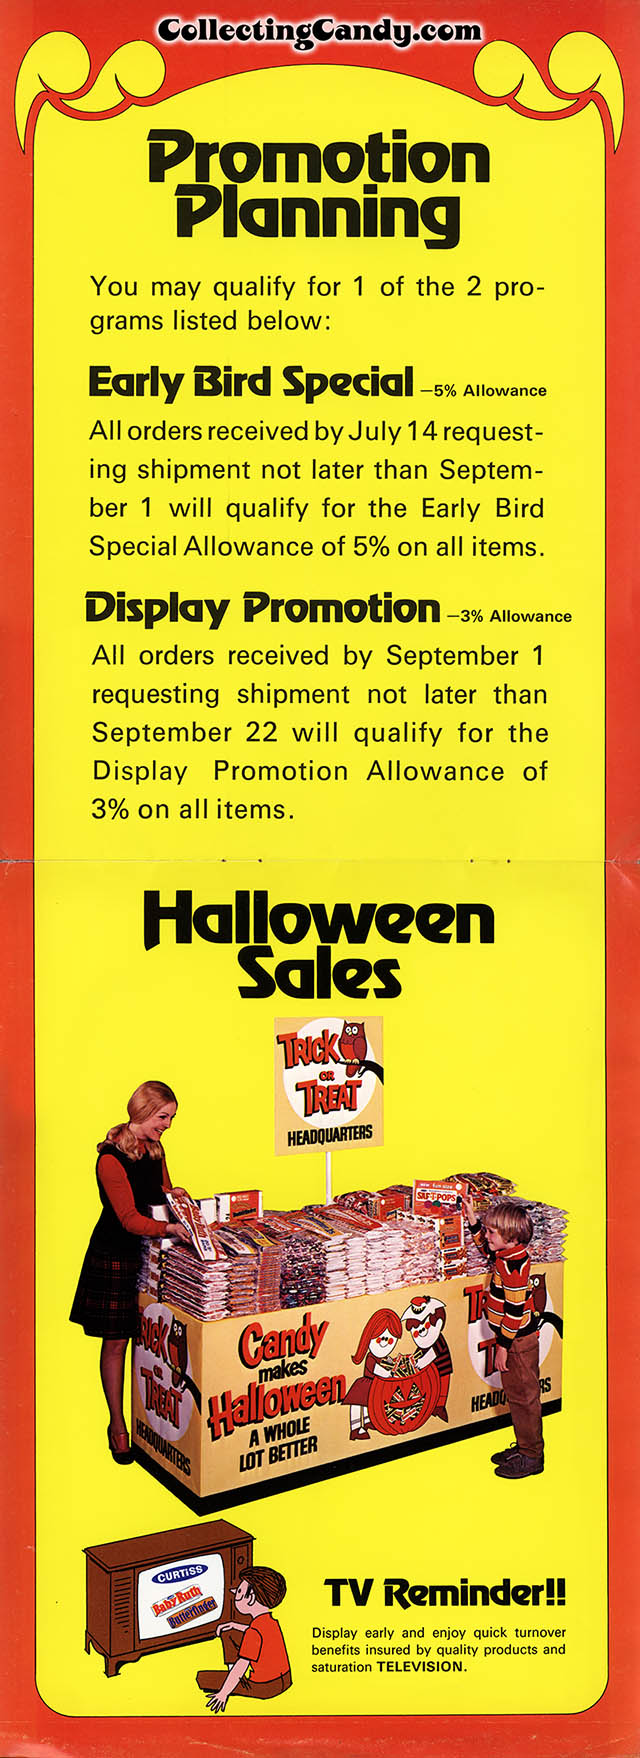 1973 Curtiss Halloween Sales Folder - Page 07